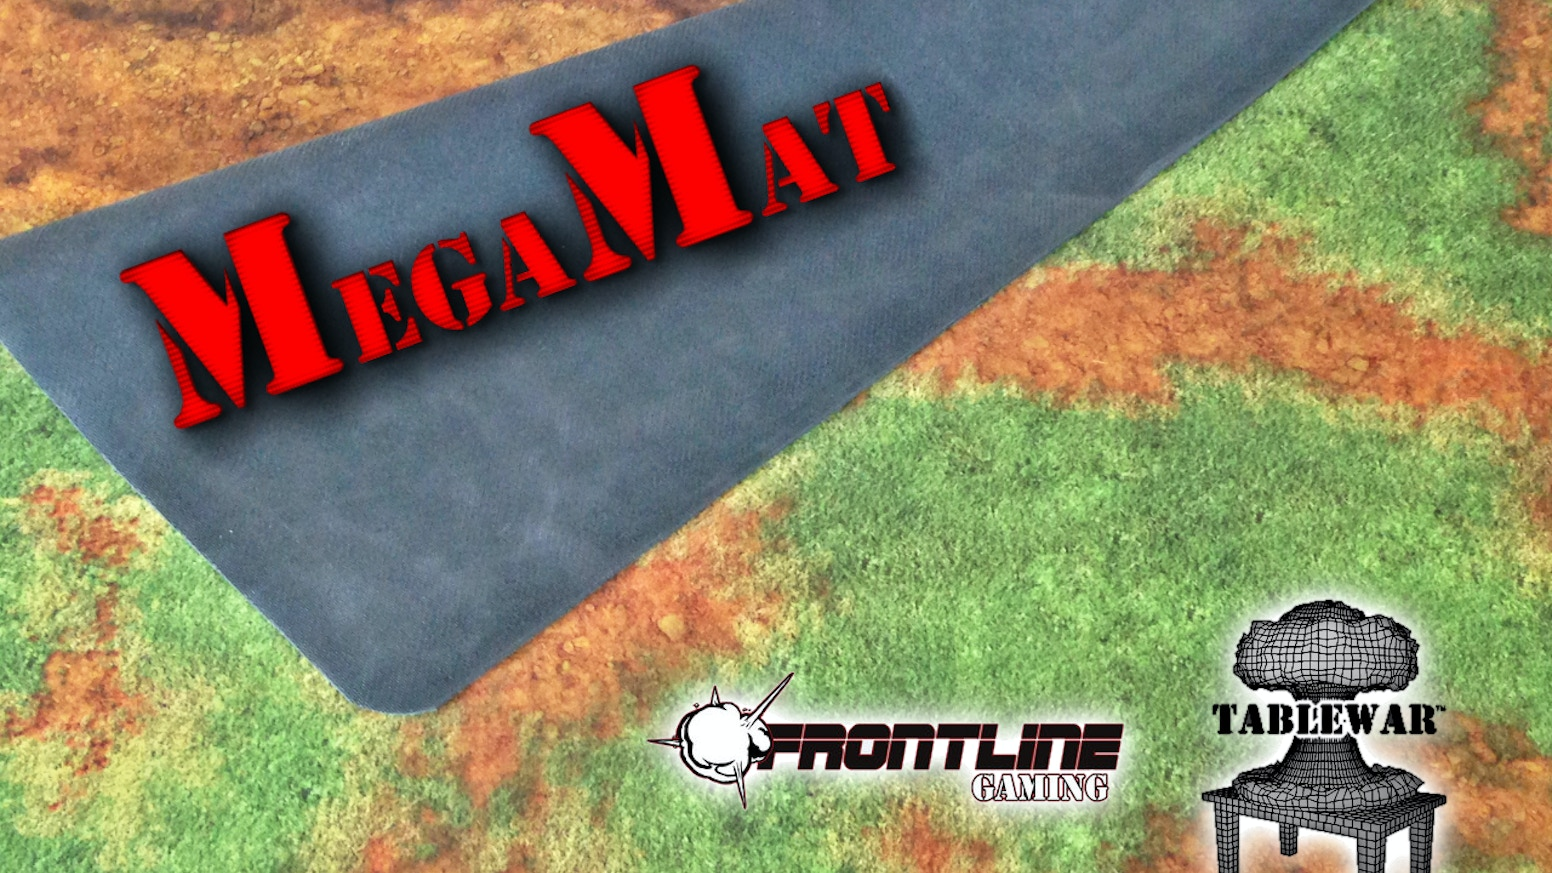 """TABLEWAR™ now has over 40 F.A.T. Mat designs across6x4', 4x4', 3x3', & 30x30"""" sizes. A seriesof themed tabletop gaming mats for miniature war gaming."""